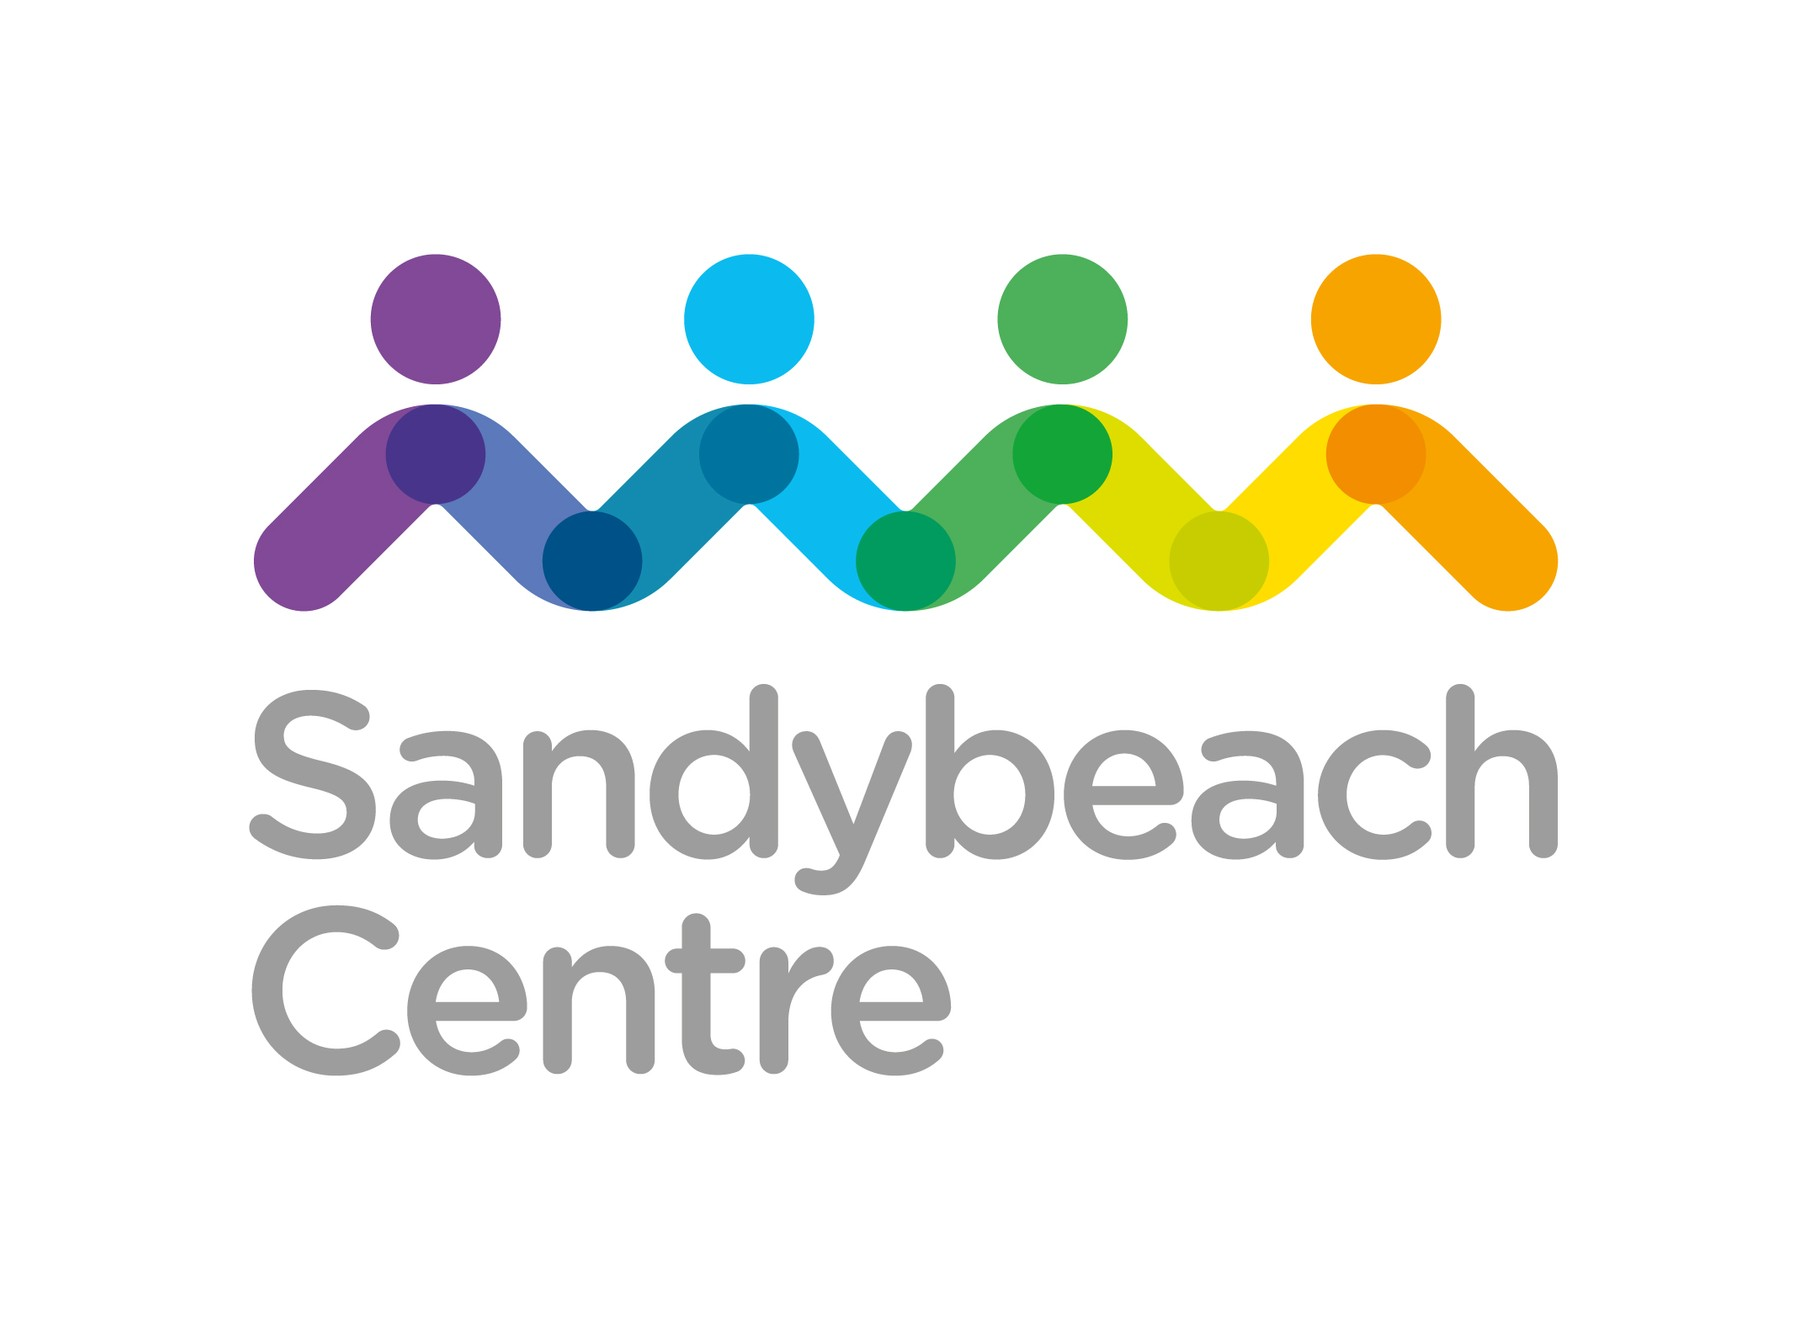 Logo of Sandybeach Centre